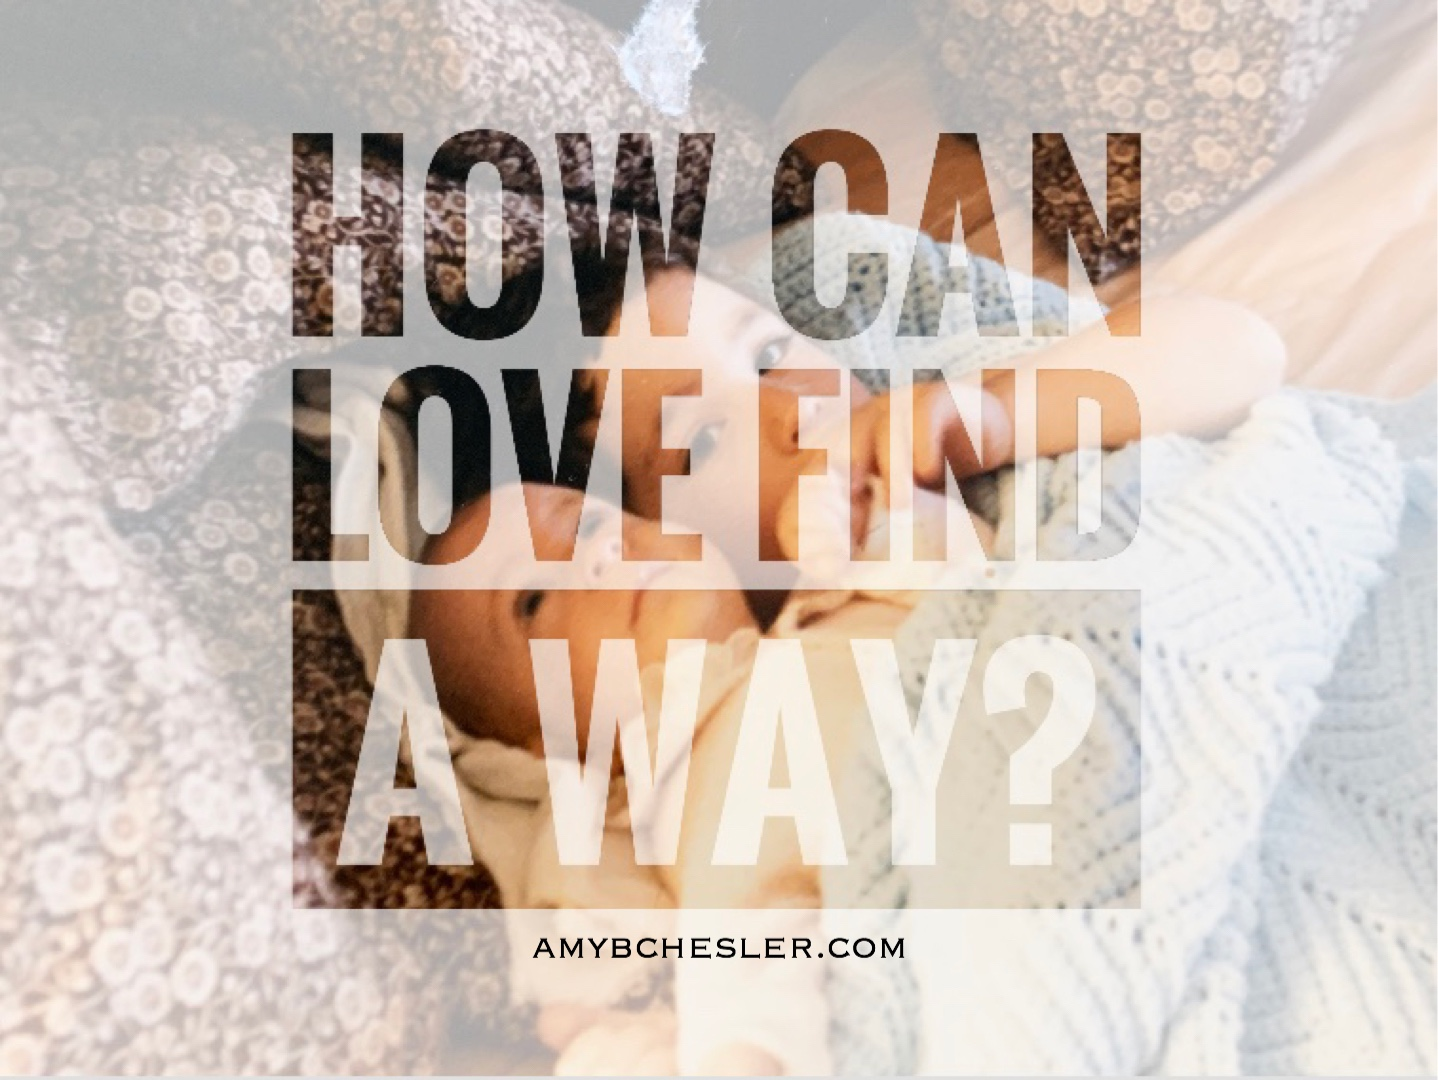 How Can Love Find a Way?